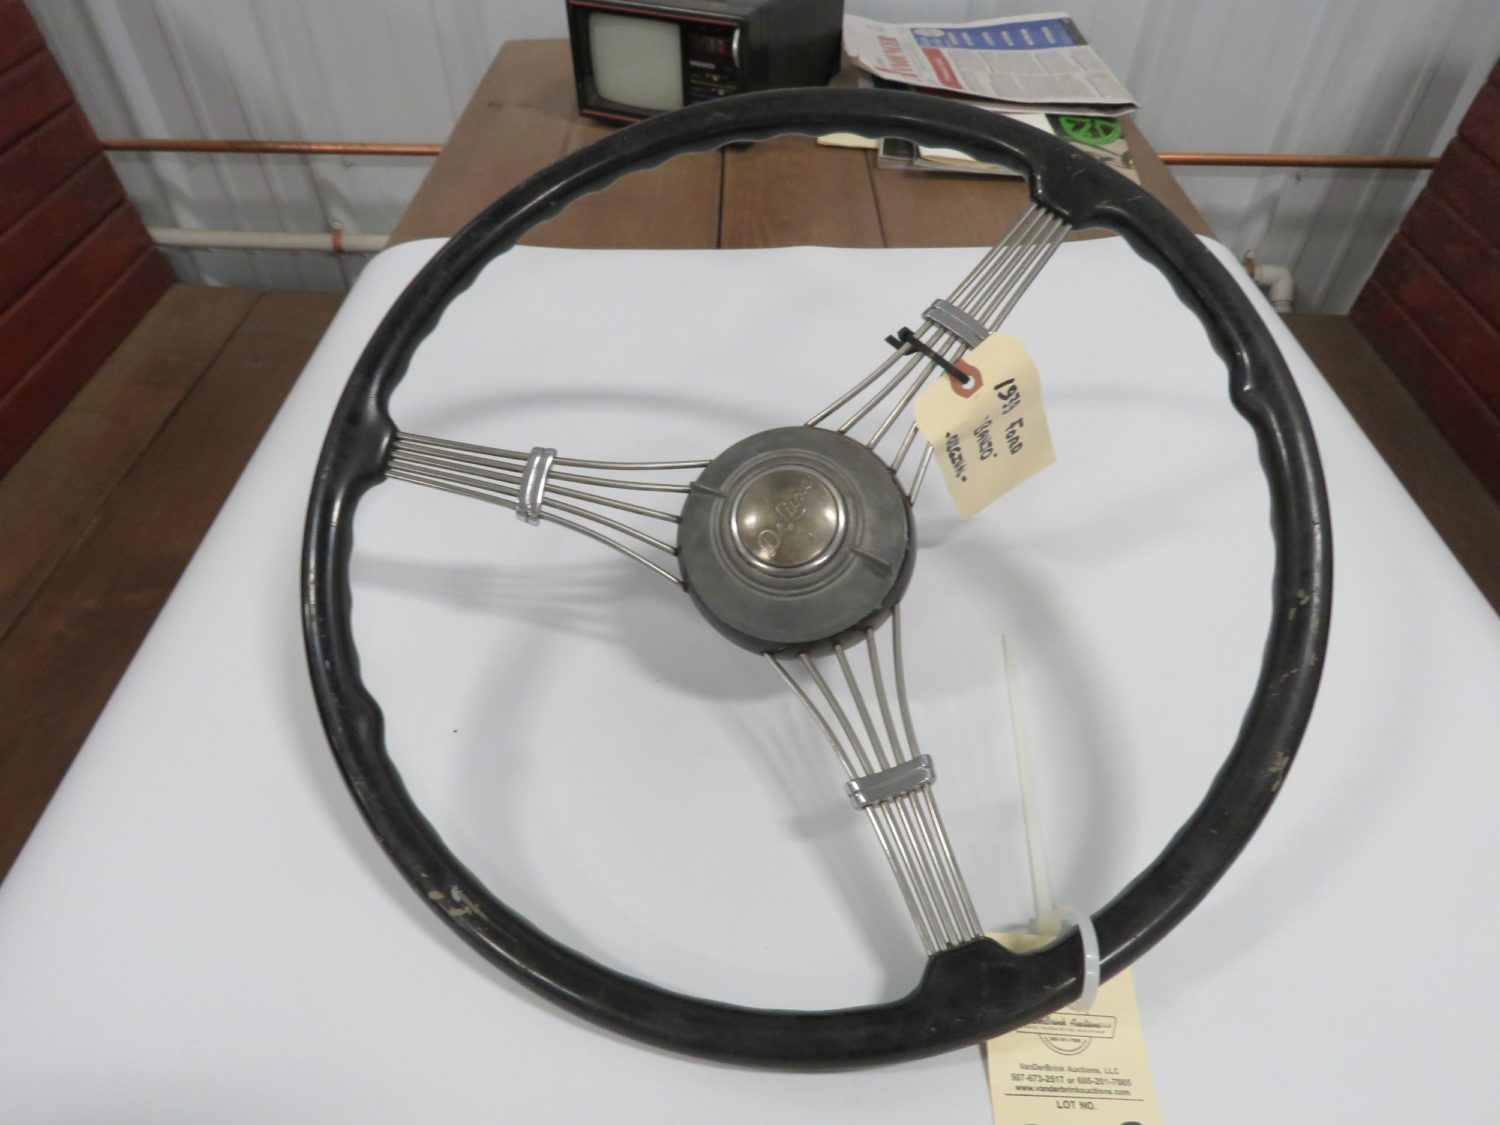 1939 Ford Banjo Steering wheel w/Horn Button - Image 1